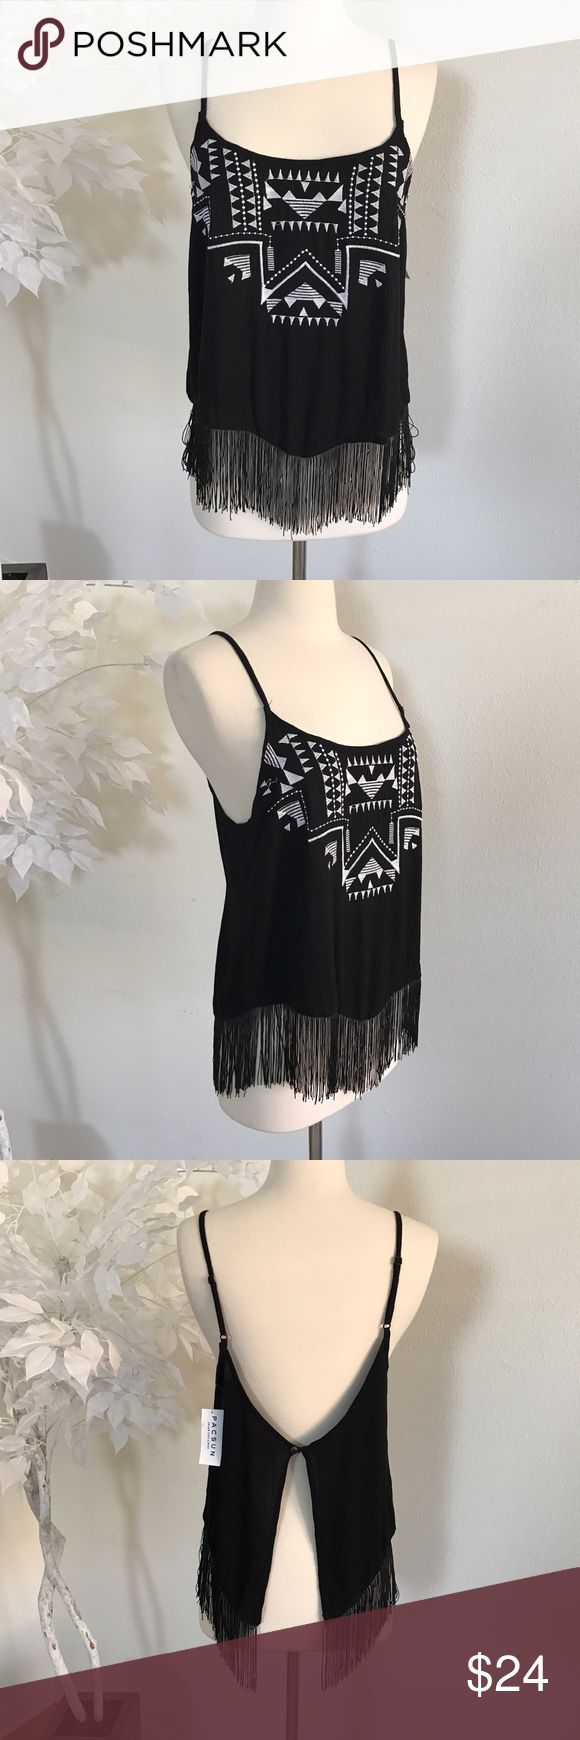 Kendall & Kylie Aztec Fringe Summer Top🖤 Kendall & Kylie Aztec Fringe Summer Top🖤 Condition: NWT Size: S Bust: 16 Length: 25 The perfect summer top, perfect for summer concerts and summer festivals.  Originally purchased at pacsun, features a very nice open back and fringes! Grab this beauty while you can 😄🌴   In Bin: PT **Comes from a SMOKE FREE 🏡 Home** Kendall & Kylie Tops Tank Tops